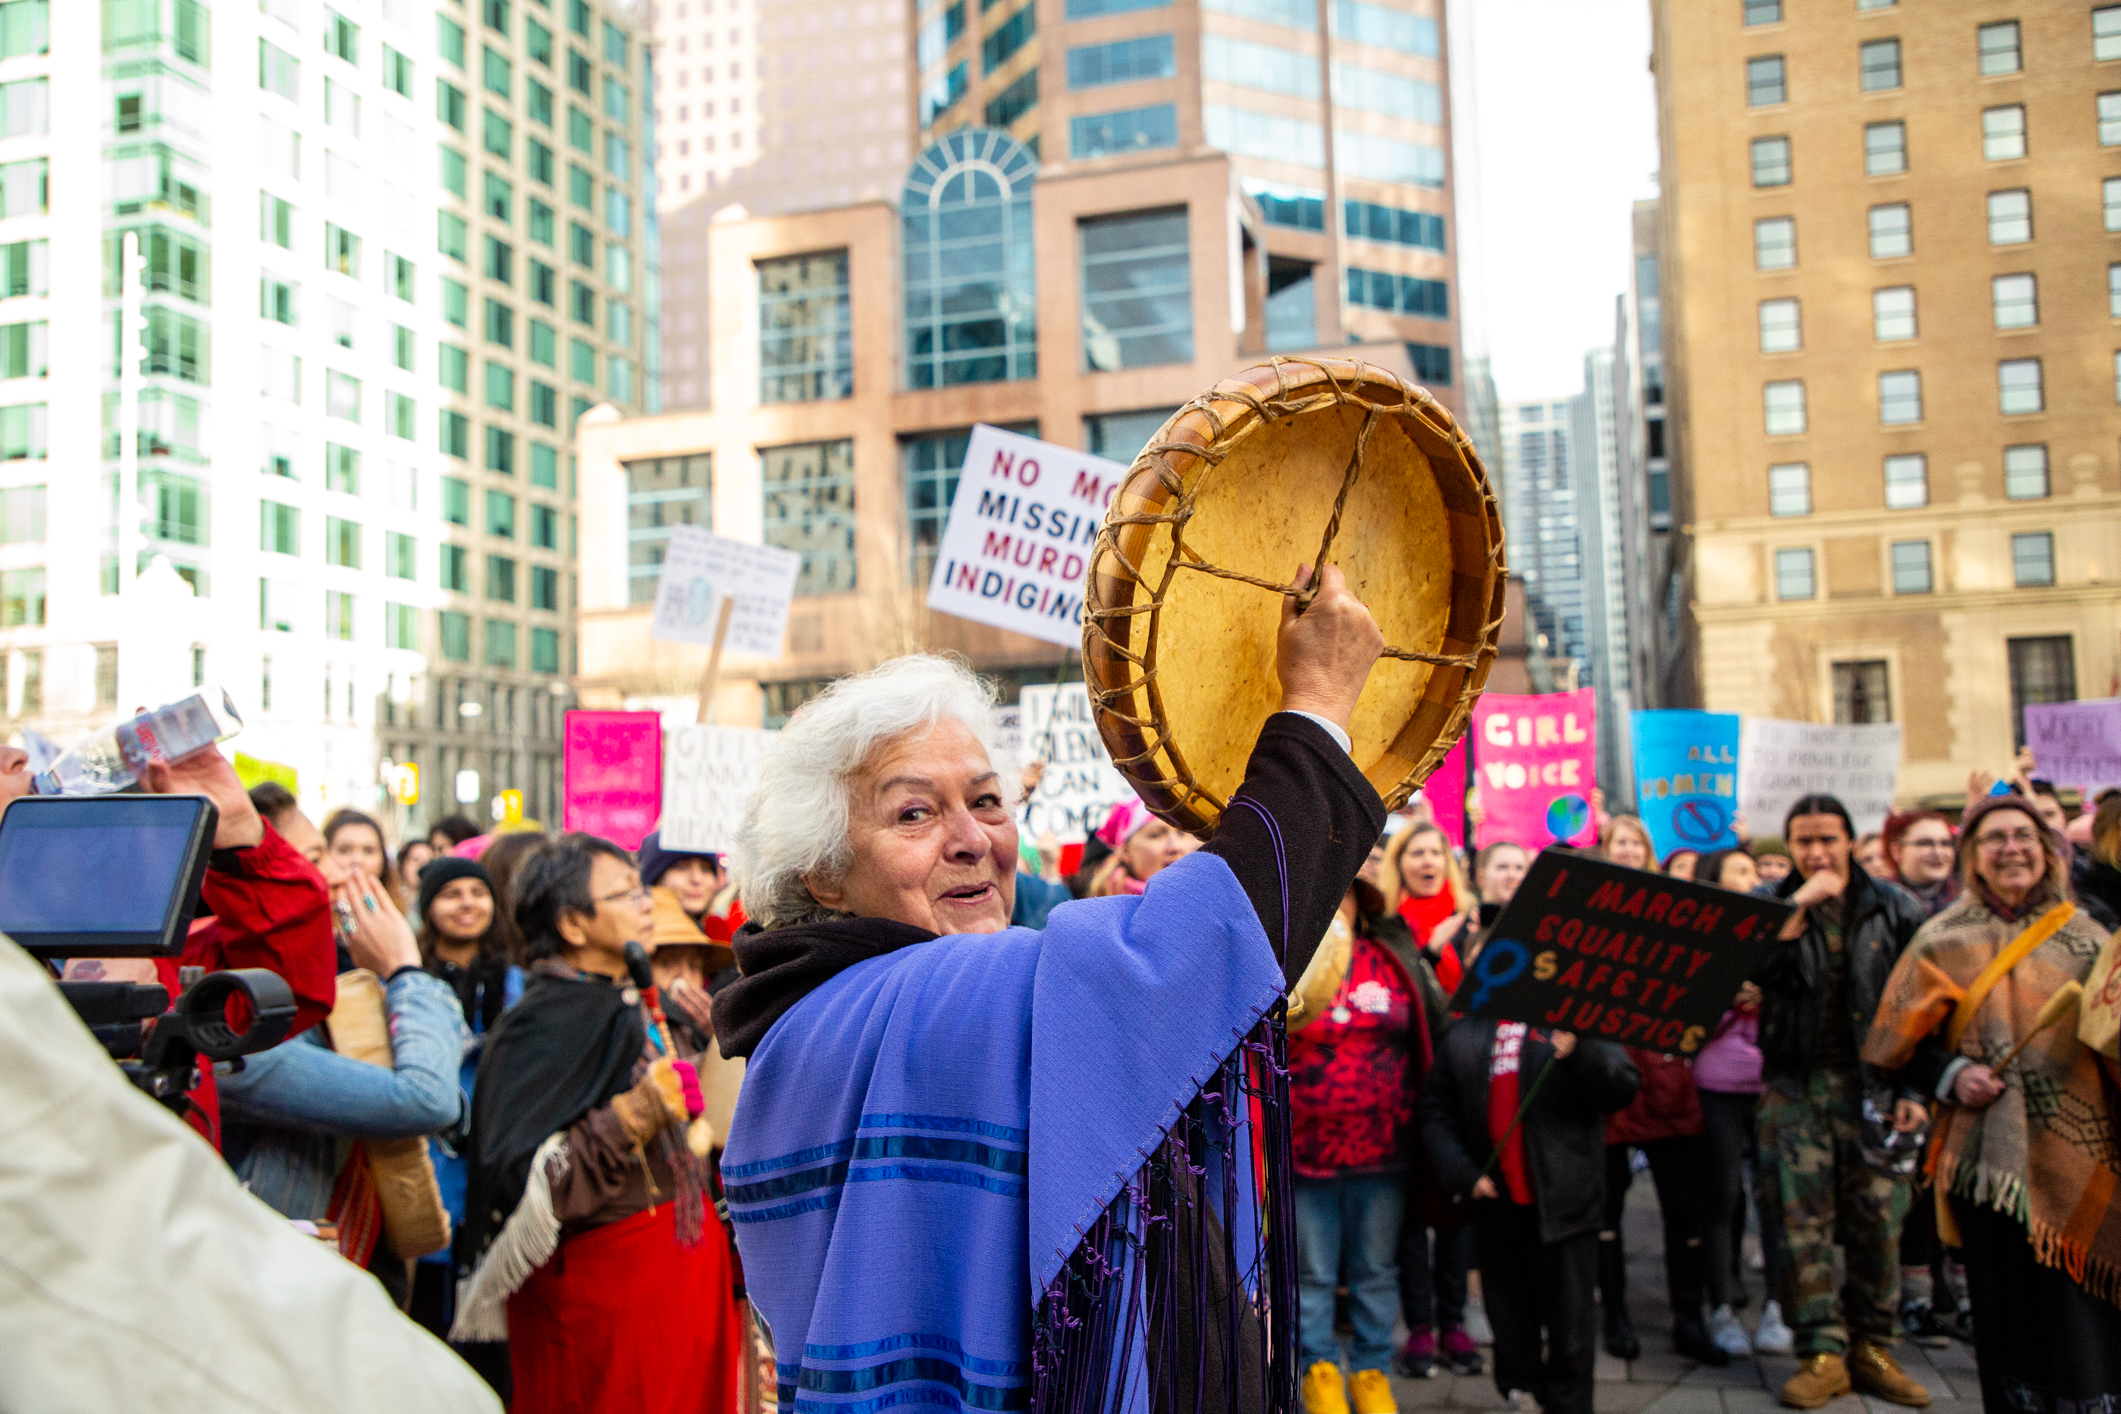 Two years after the first march in response to Donald Trump's inauguration, the Women's March in Vancouver remains part of a global movement — but had not yet shifted its focus inwards to Canada. The rally on January 19 put the spotlight on Canadian institutions and injustices.